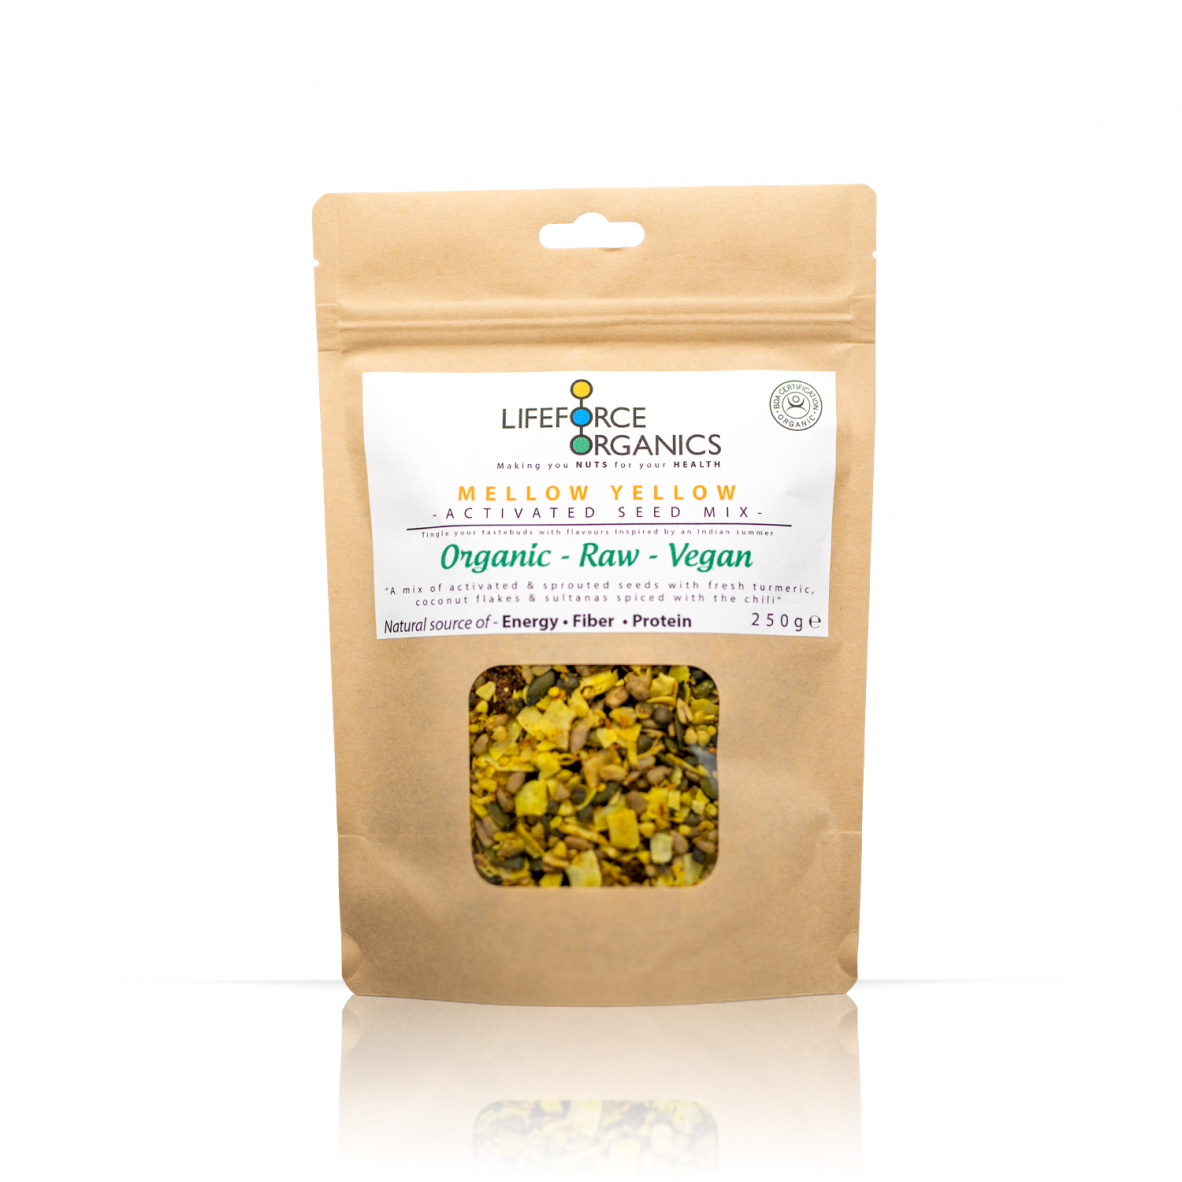 Mellow Yellow Activated Seed Mix (Organic) 250g